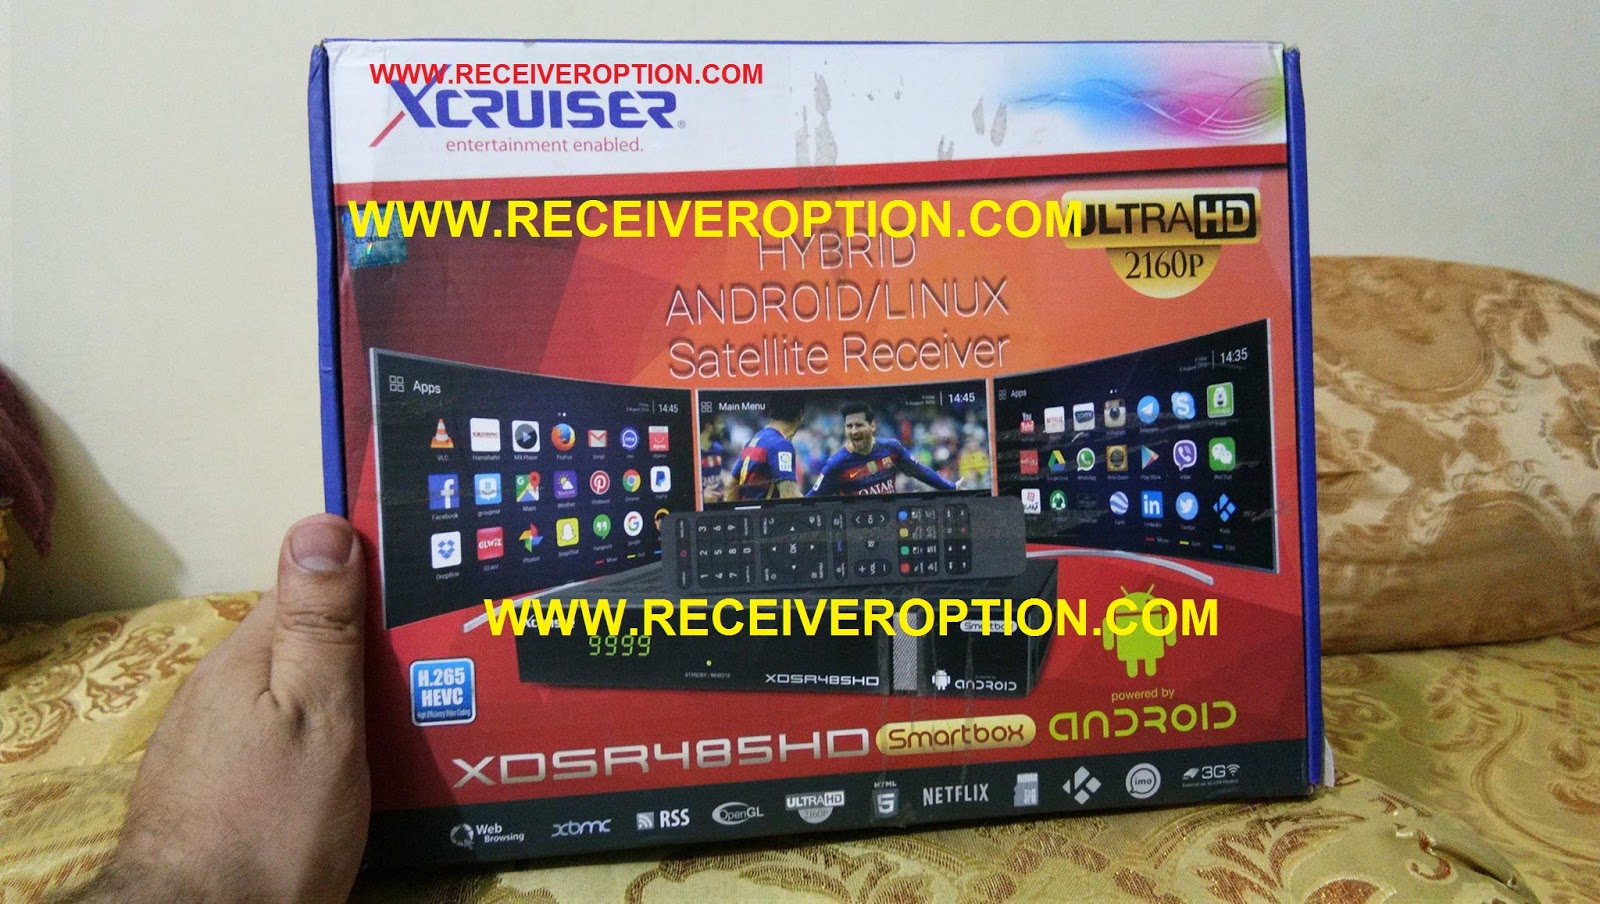 XCRUISER XDSR485HD SMARTBOX ANDROID RECEIVER CCCAM OPTION - HOW TO